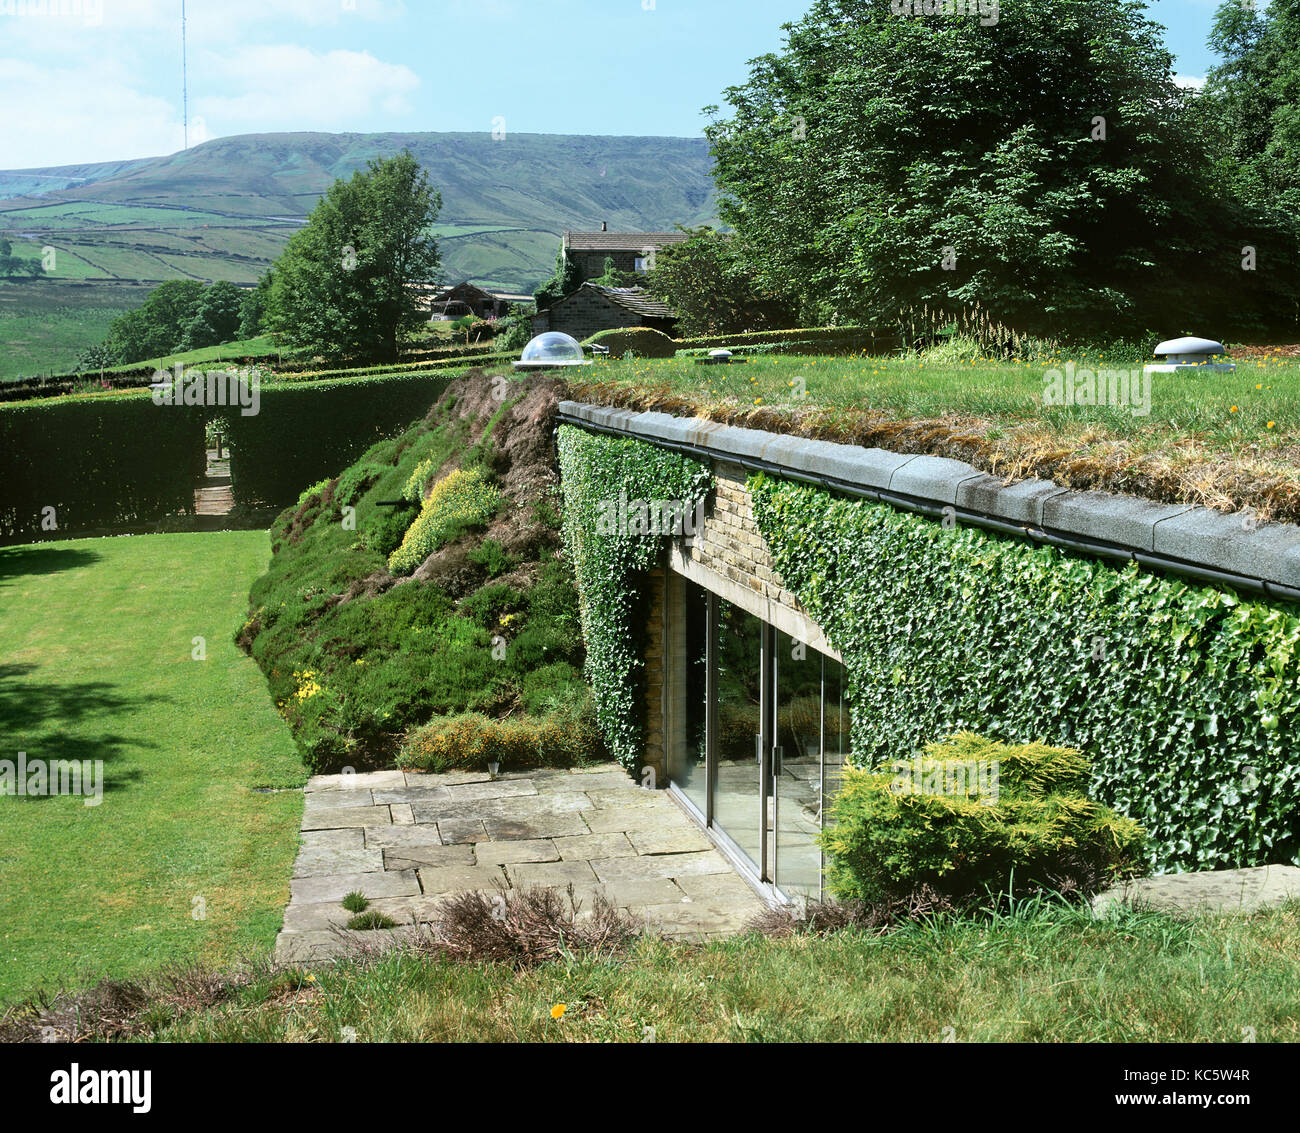 'Underhill': the first modern earth-sheltered house in Britain (1975) - the self-designed home of architect - Stock Image